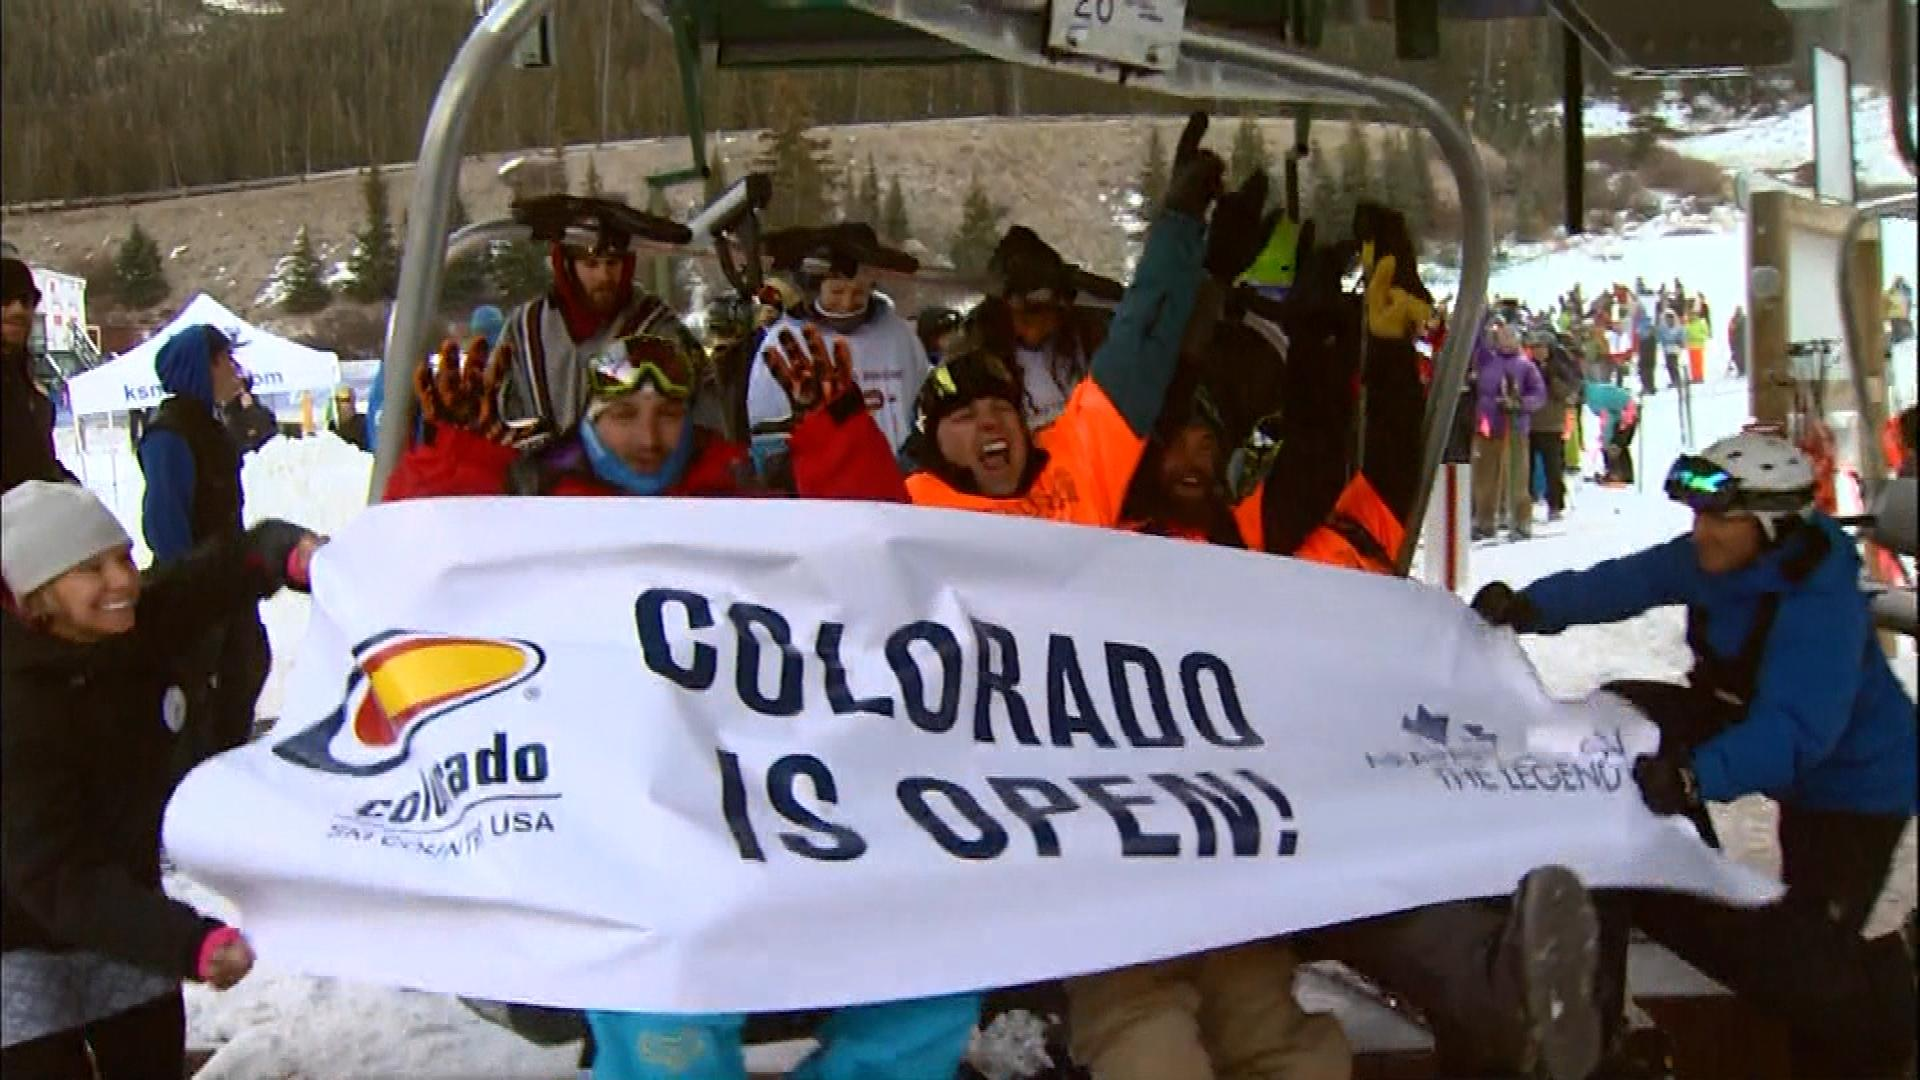 Opening Day at Arapahoe Basin on Sunday (credit: CBS)